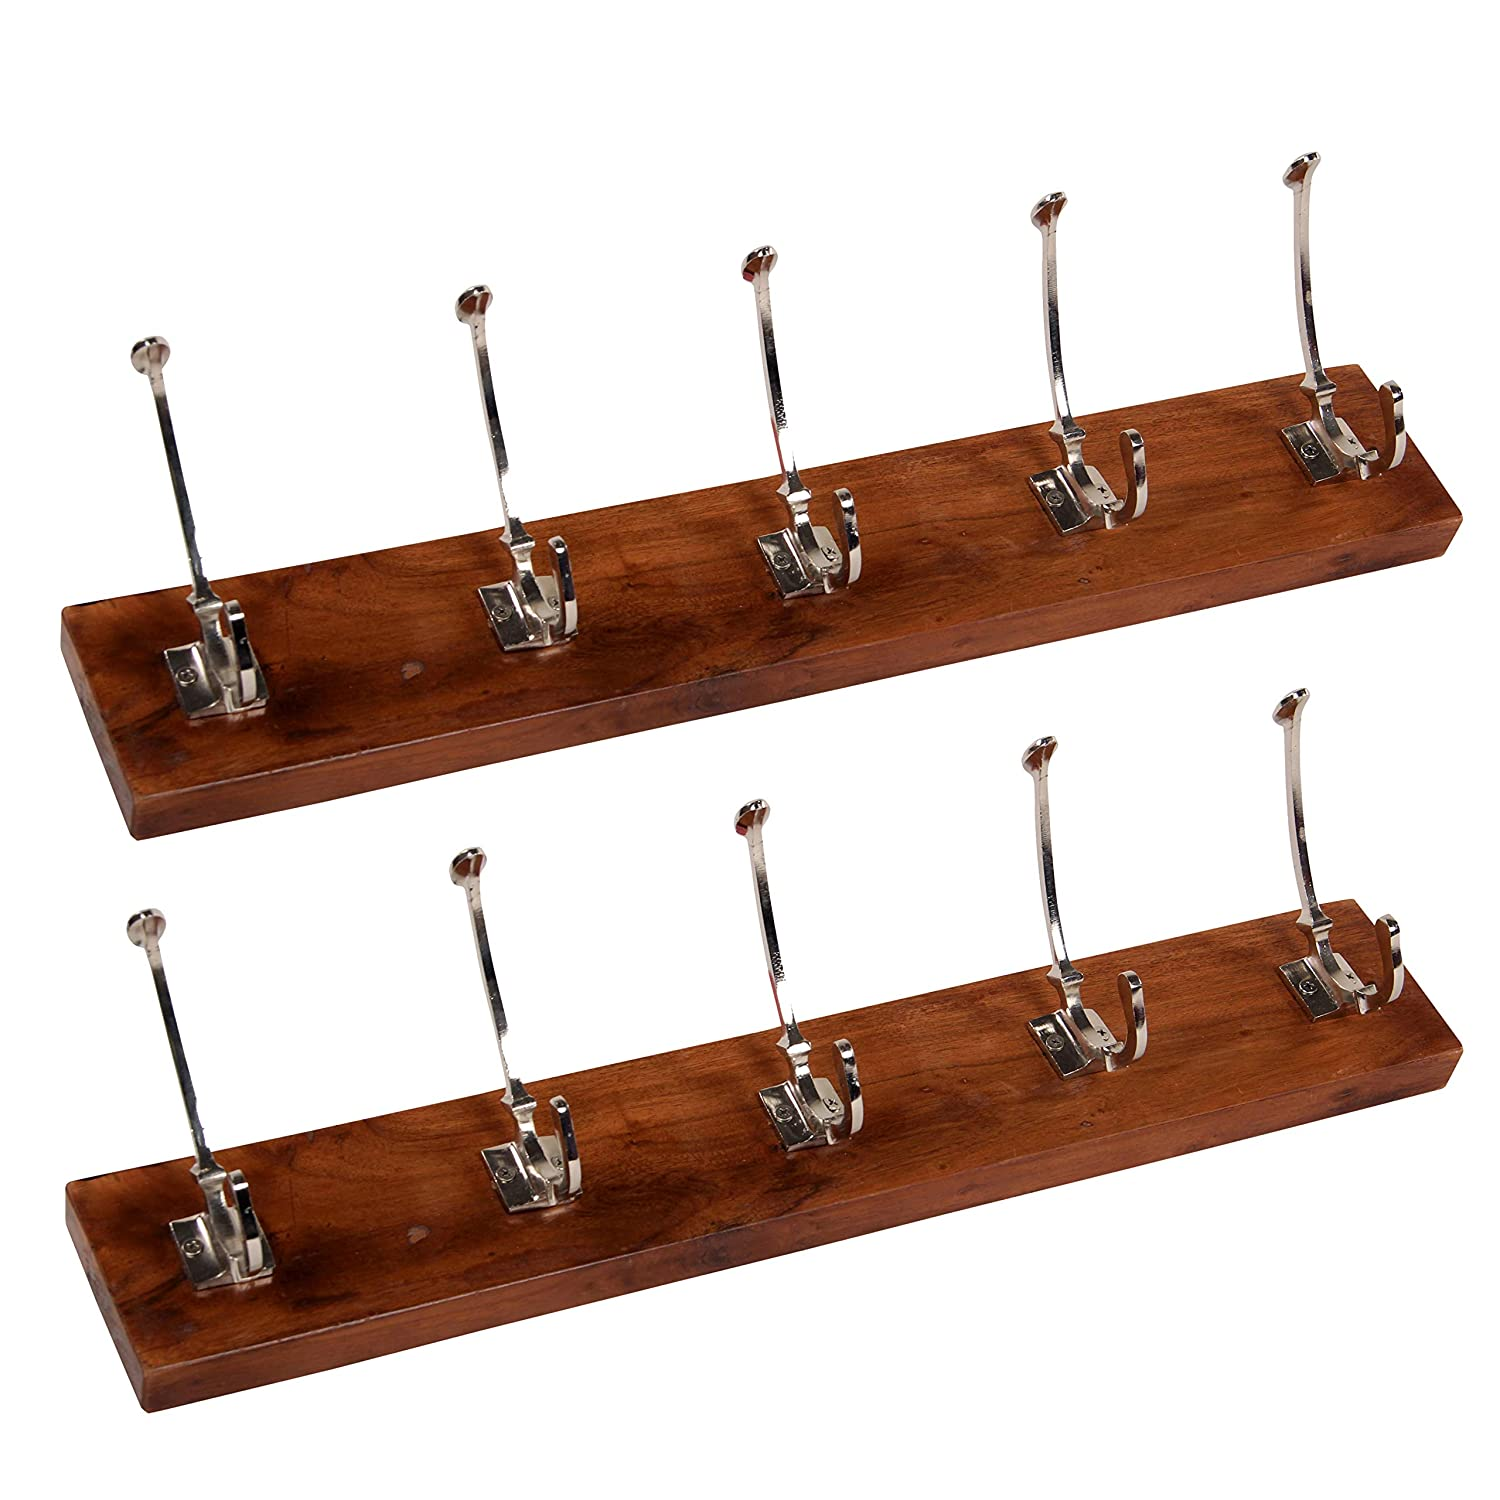 DECORINY Acacia Wood Utility Wall Mounted Board-Nickle-5 Hooks Set of 2 COAT RACKS, Pack of 2